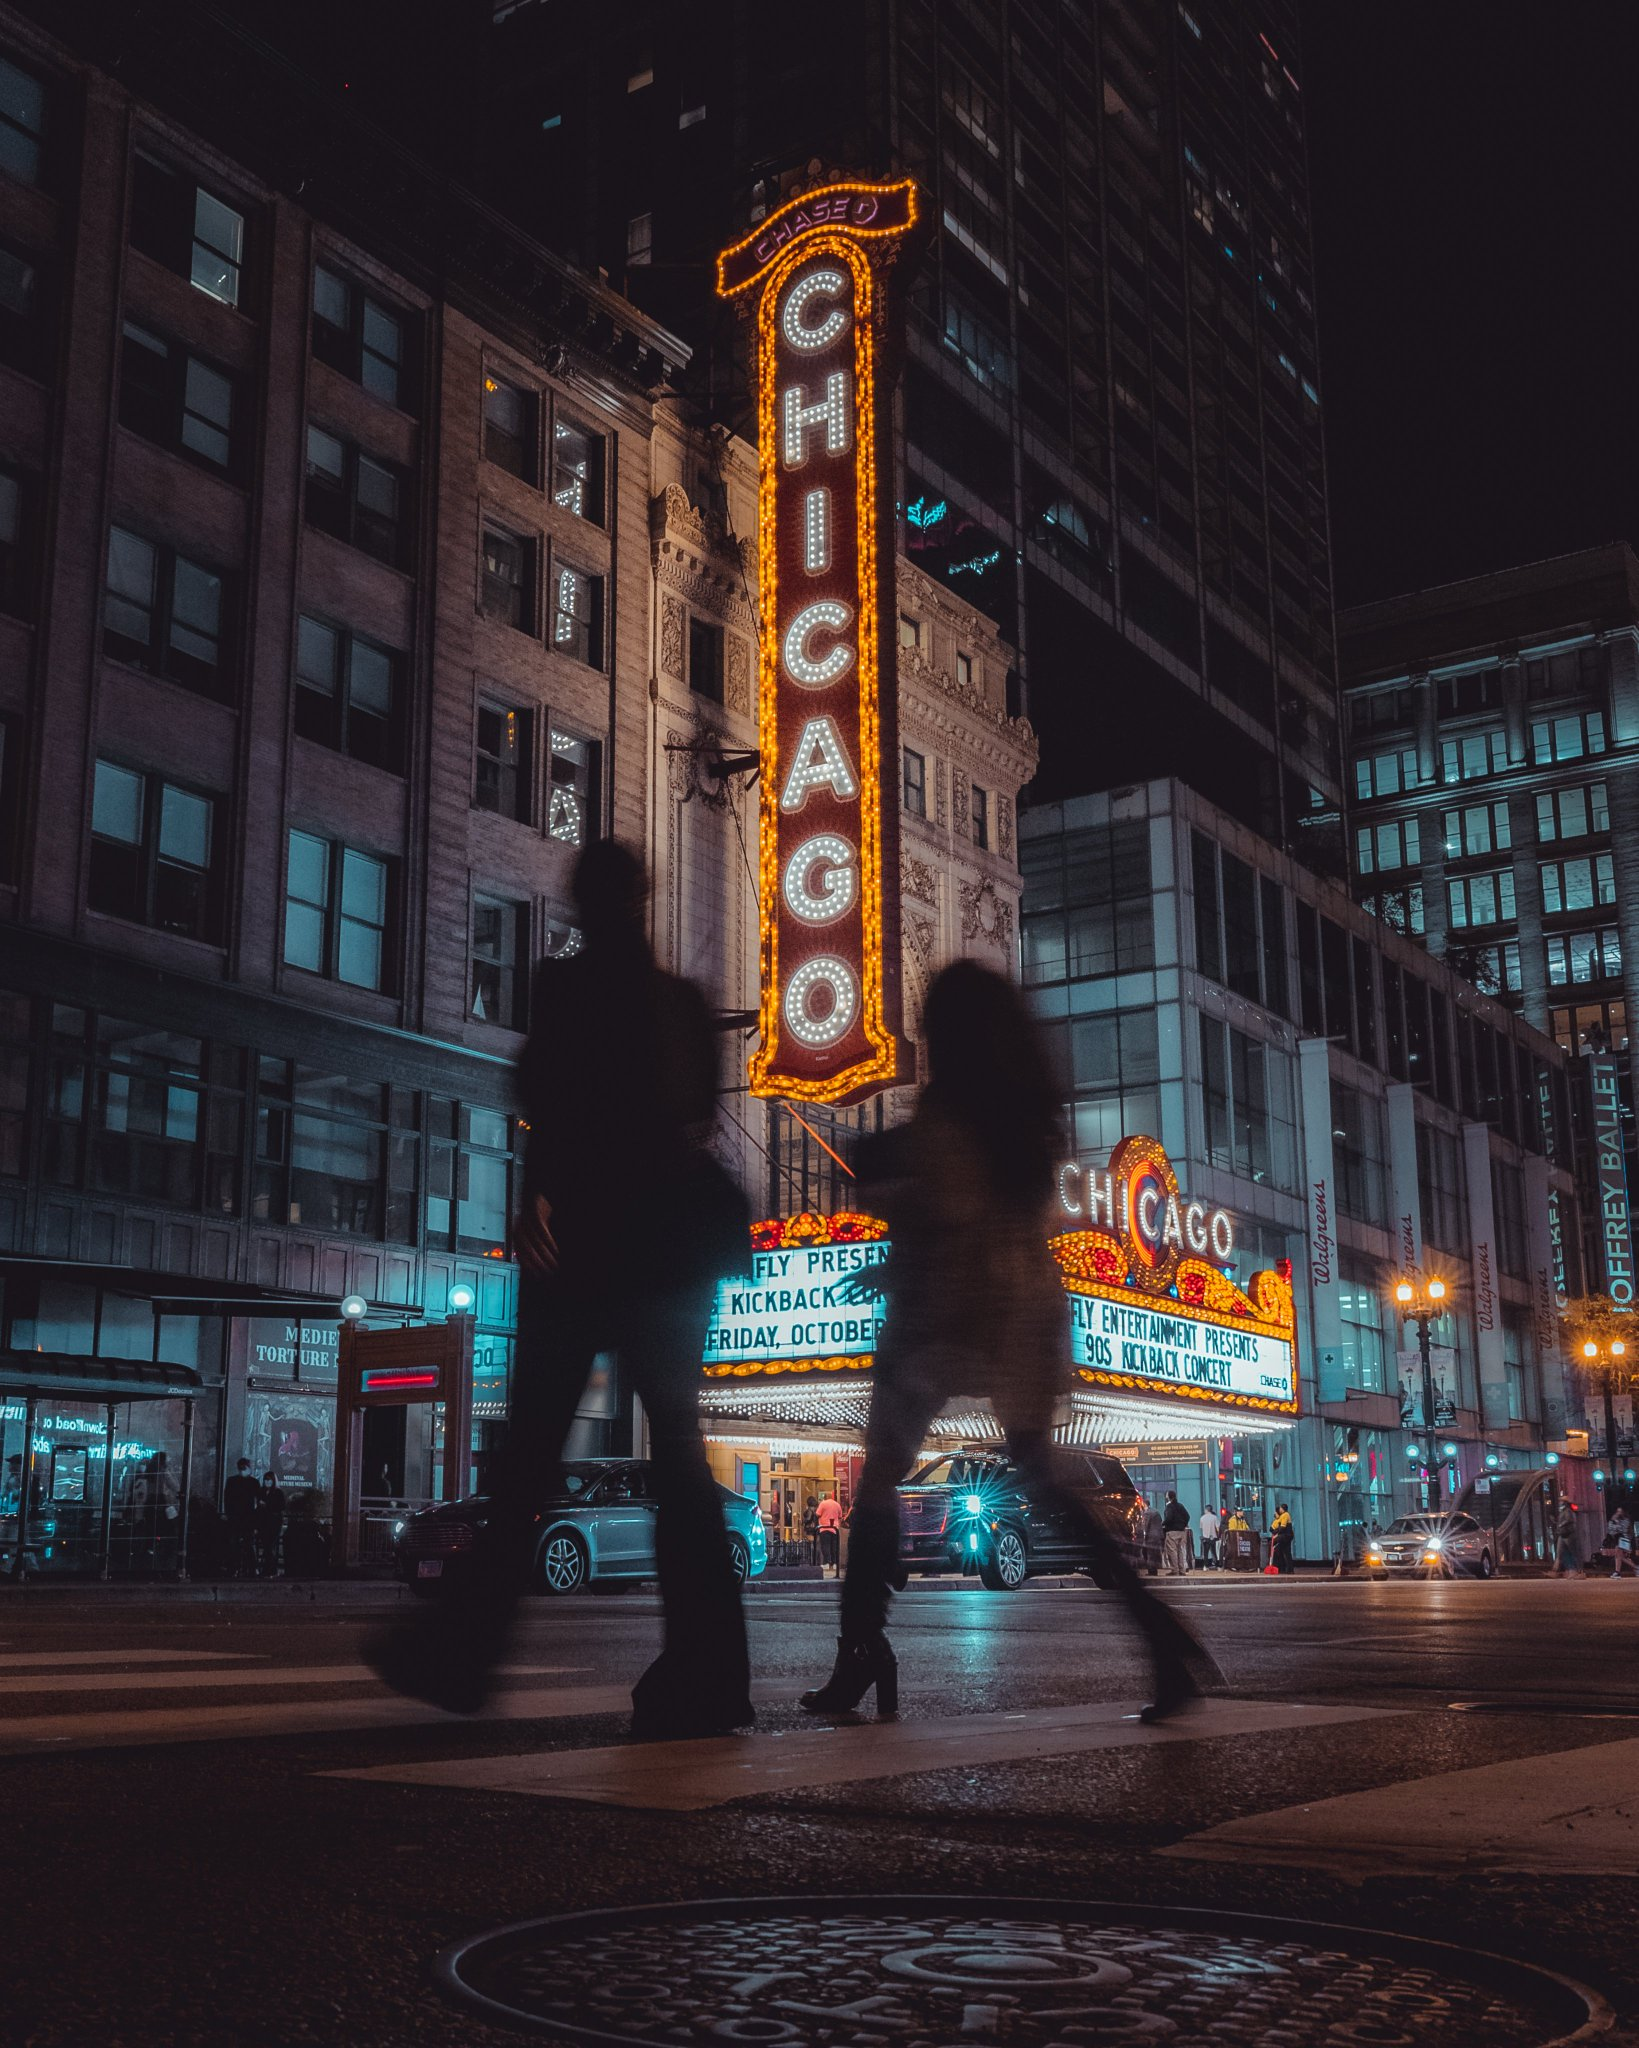 Crossing over (into the weekend)  #chicagotheatre #chicago #streetphotography https://t.co/z6O1KuzMH2